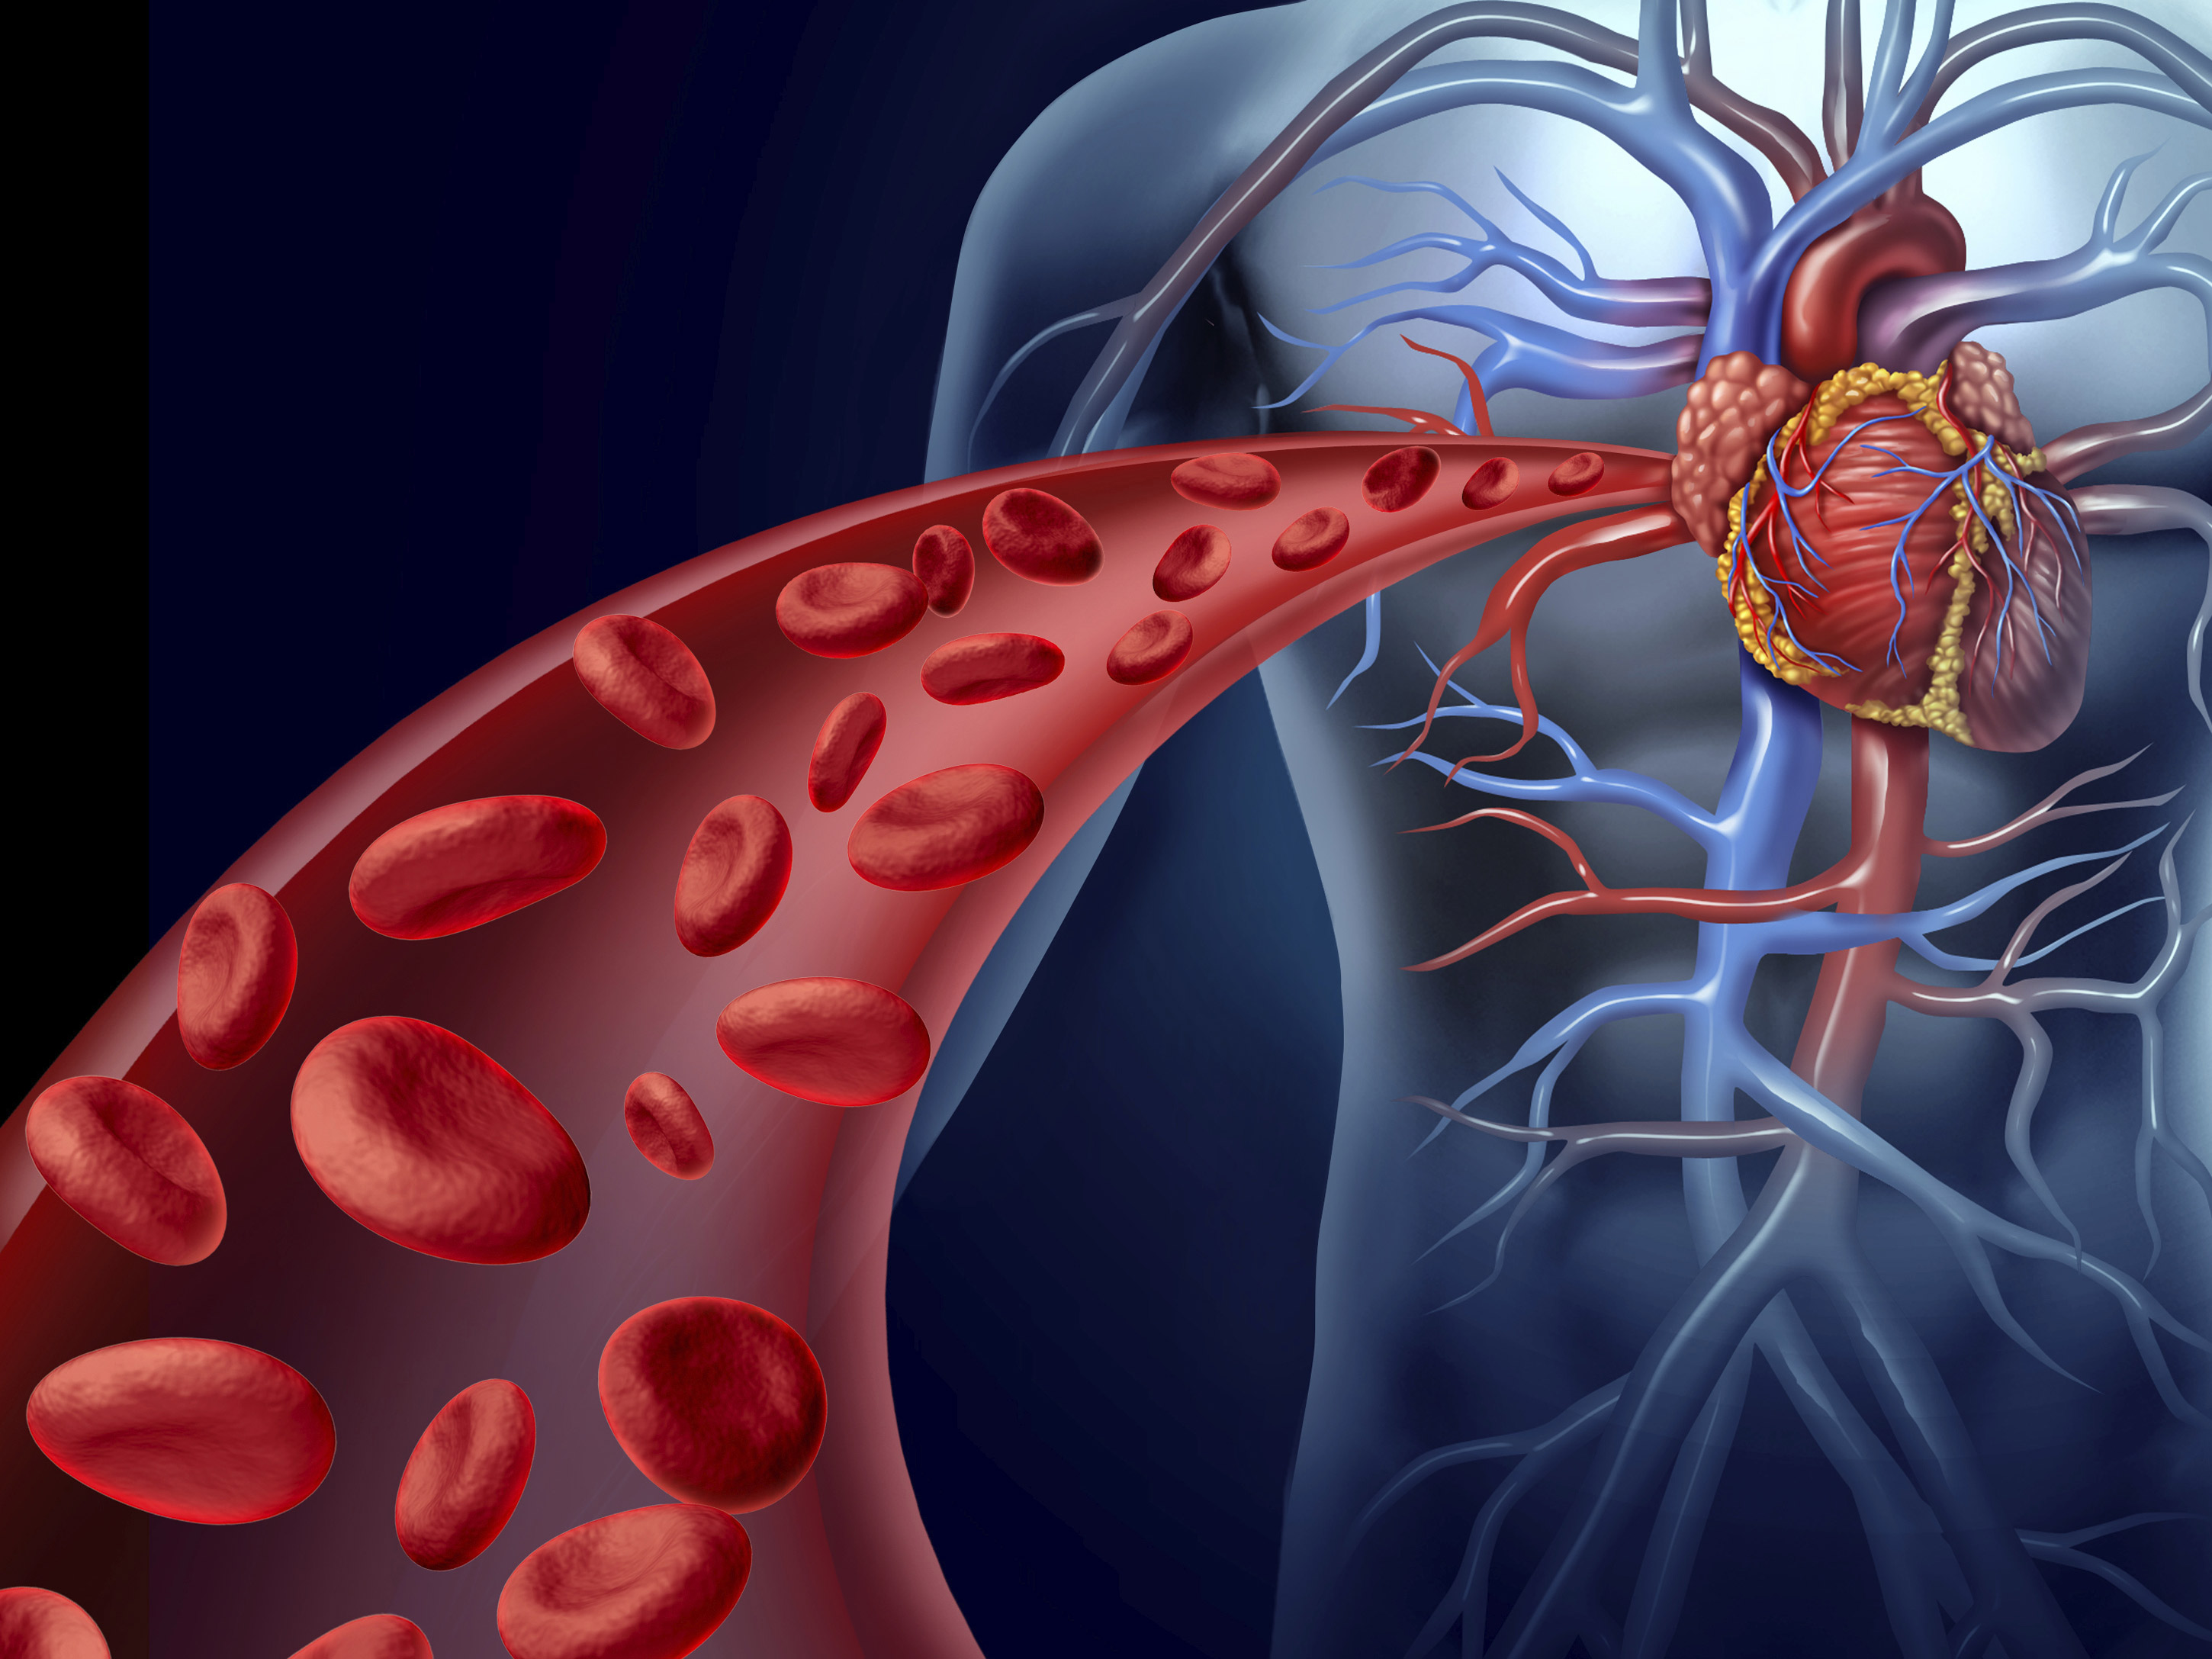 Five minute boost keeps your arteries loose